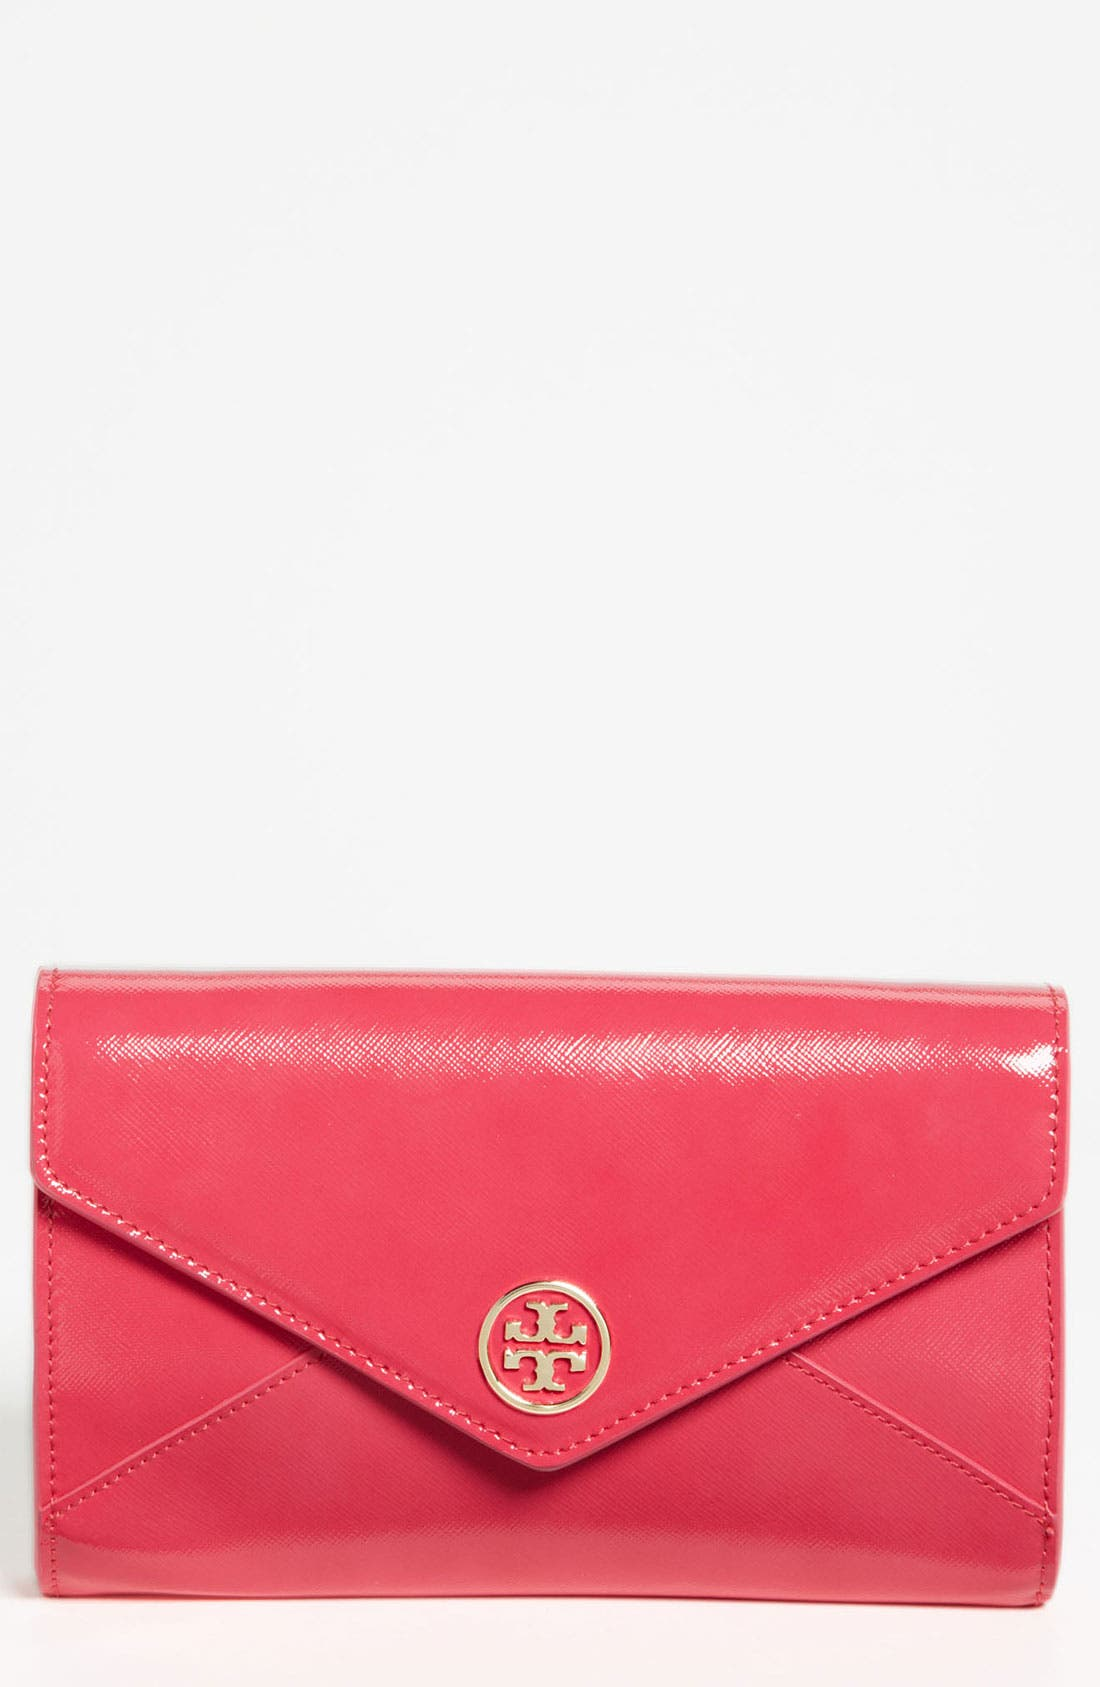 Main Image - Tory Burch 'Robinson - Small' Envelope Clutch